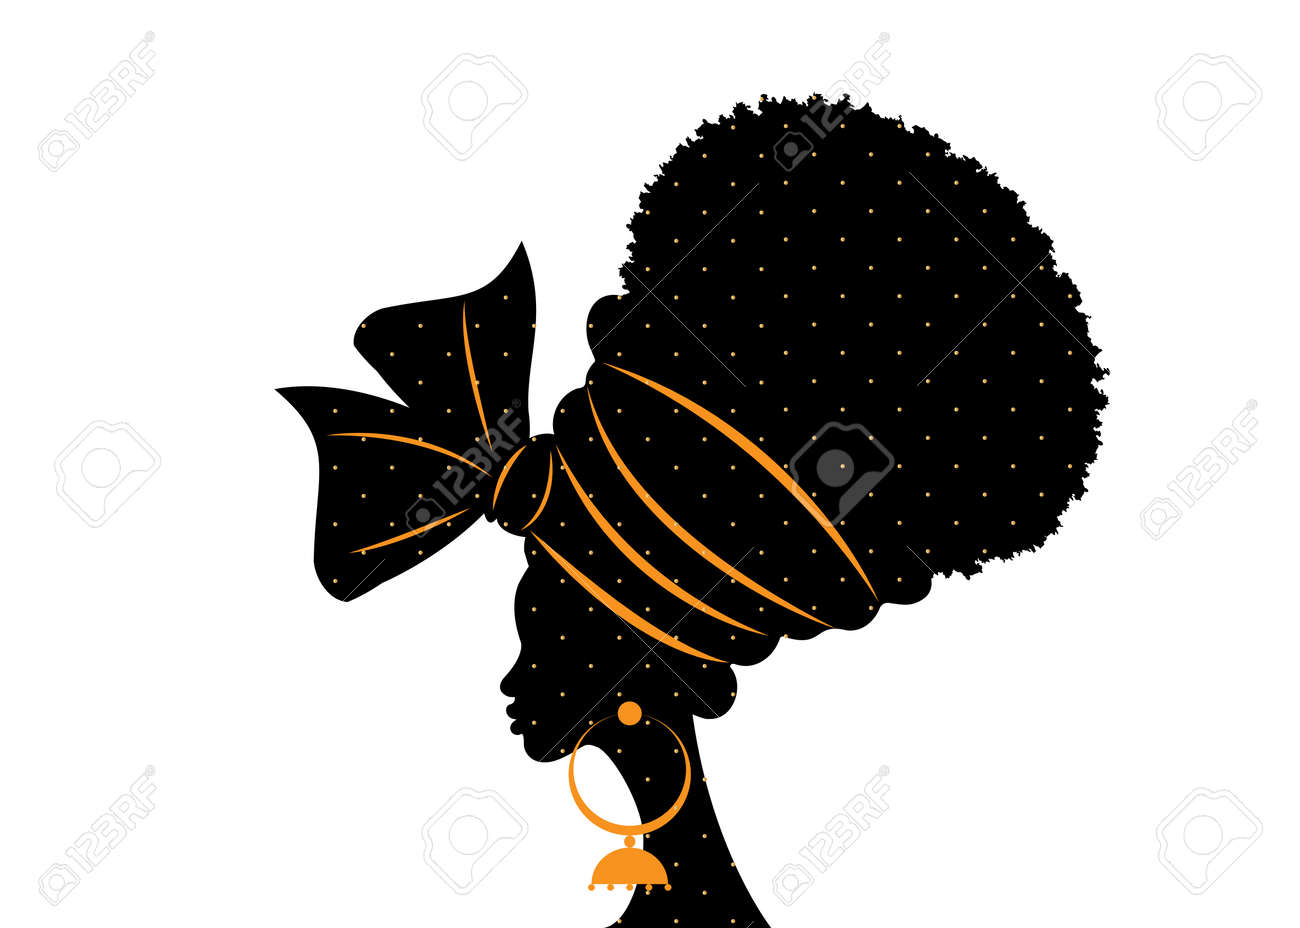 portrait beautiful African woman in traditional turban handmade tribal wedding polka dots textile, Kente head wrap African with ethnic earrings, black women Afro curly hair vector silhouette isolated - 173739389